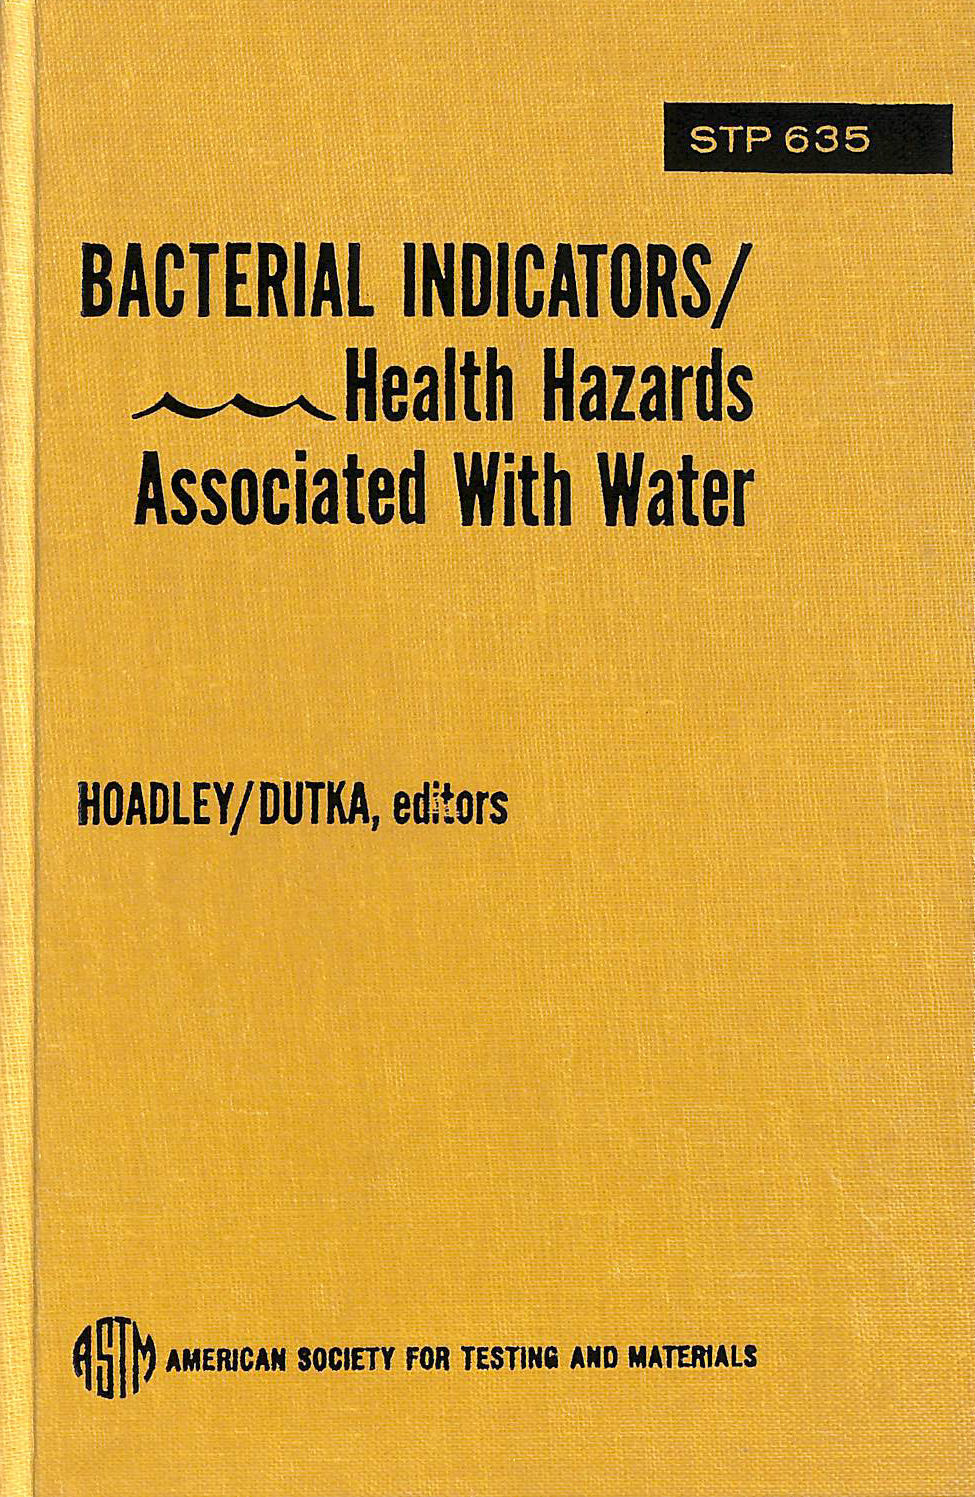 Image for Bacterial Indicators/Health Hazards Associated with Water